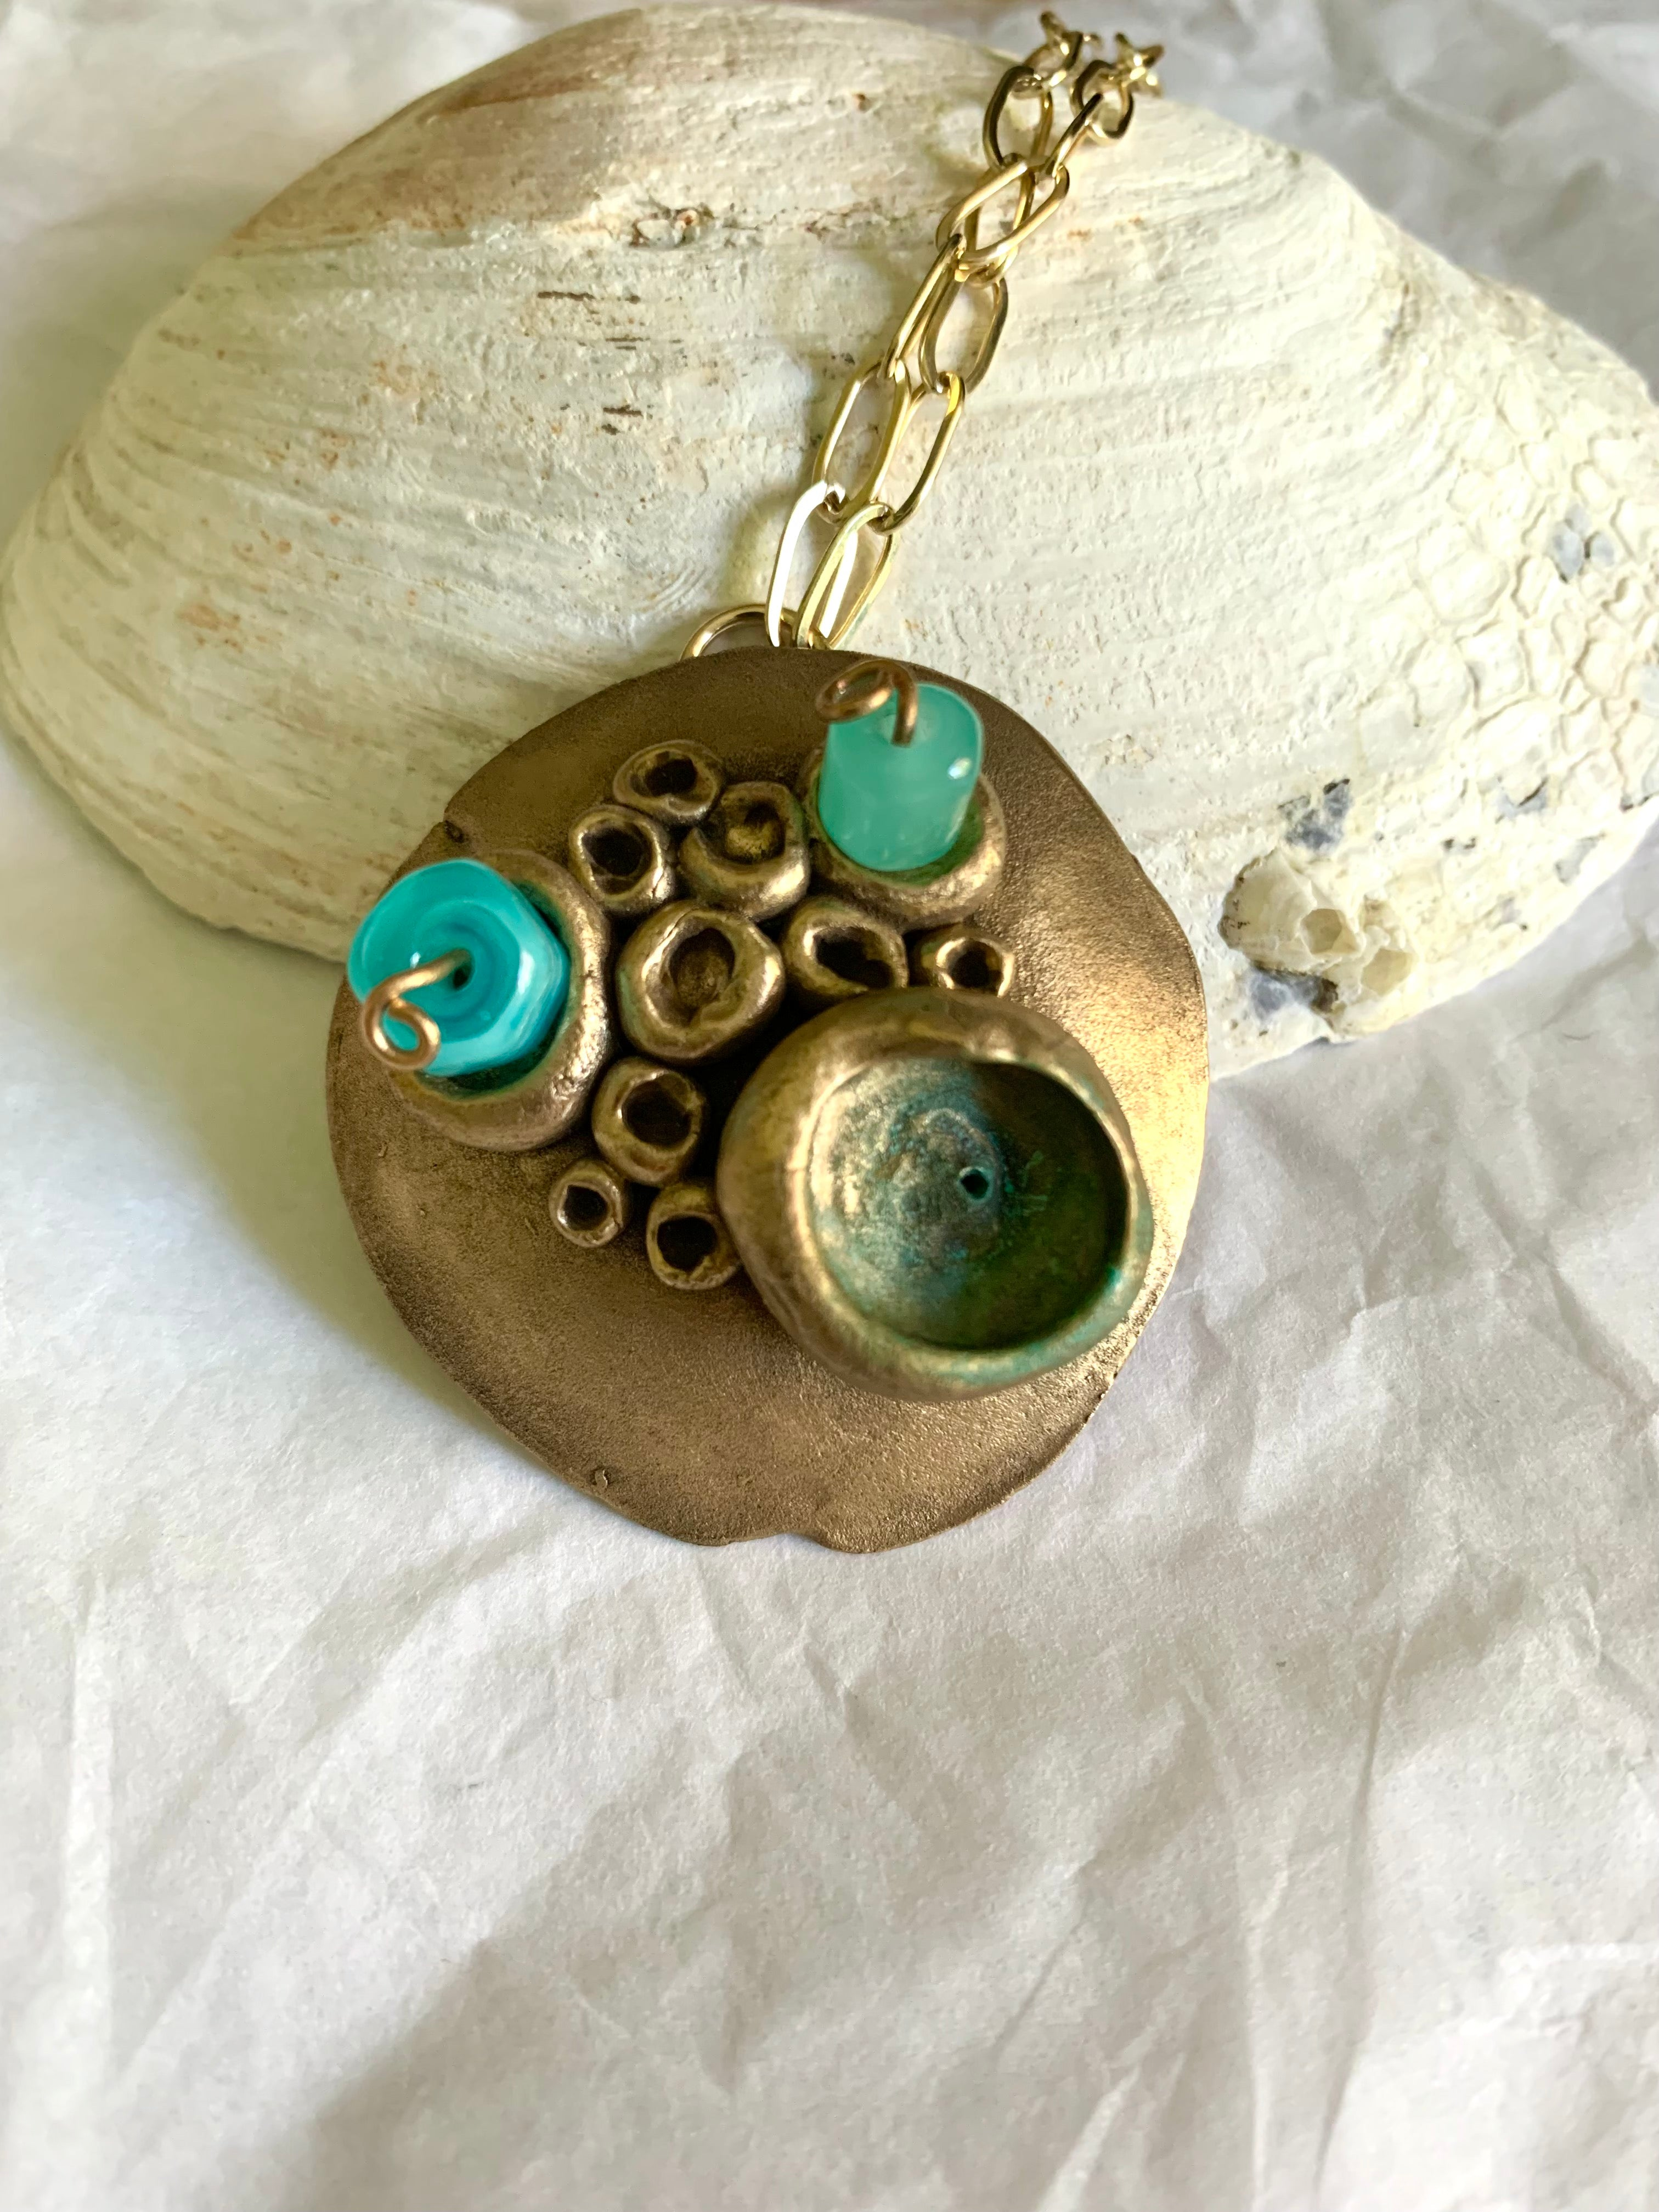 Ocean inspired statement necklace made from bronze and blue glass beads